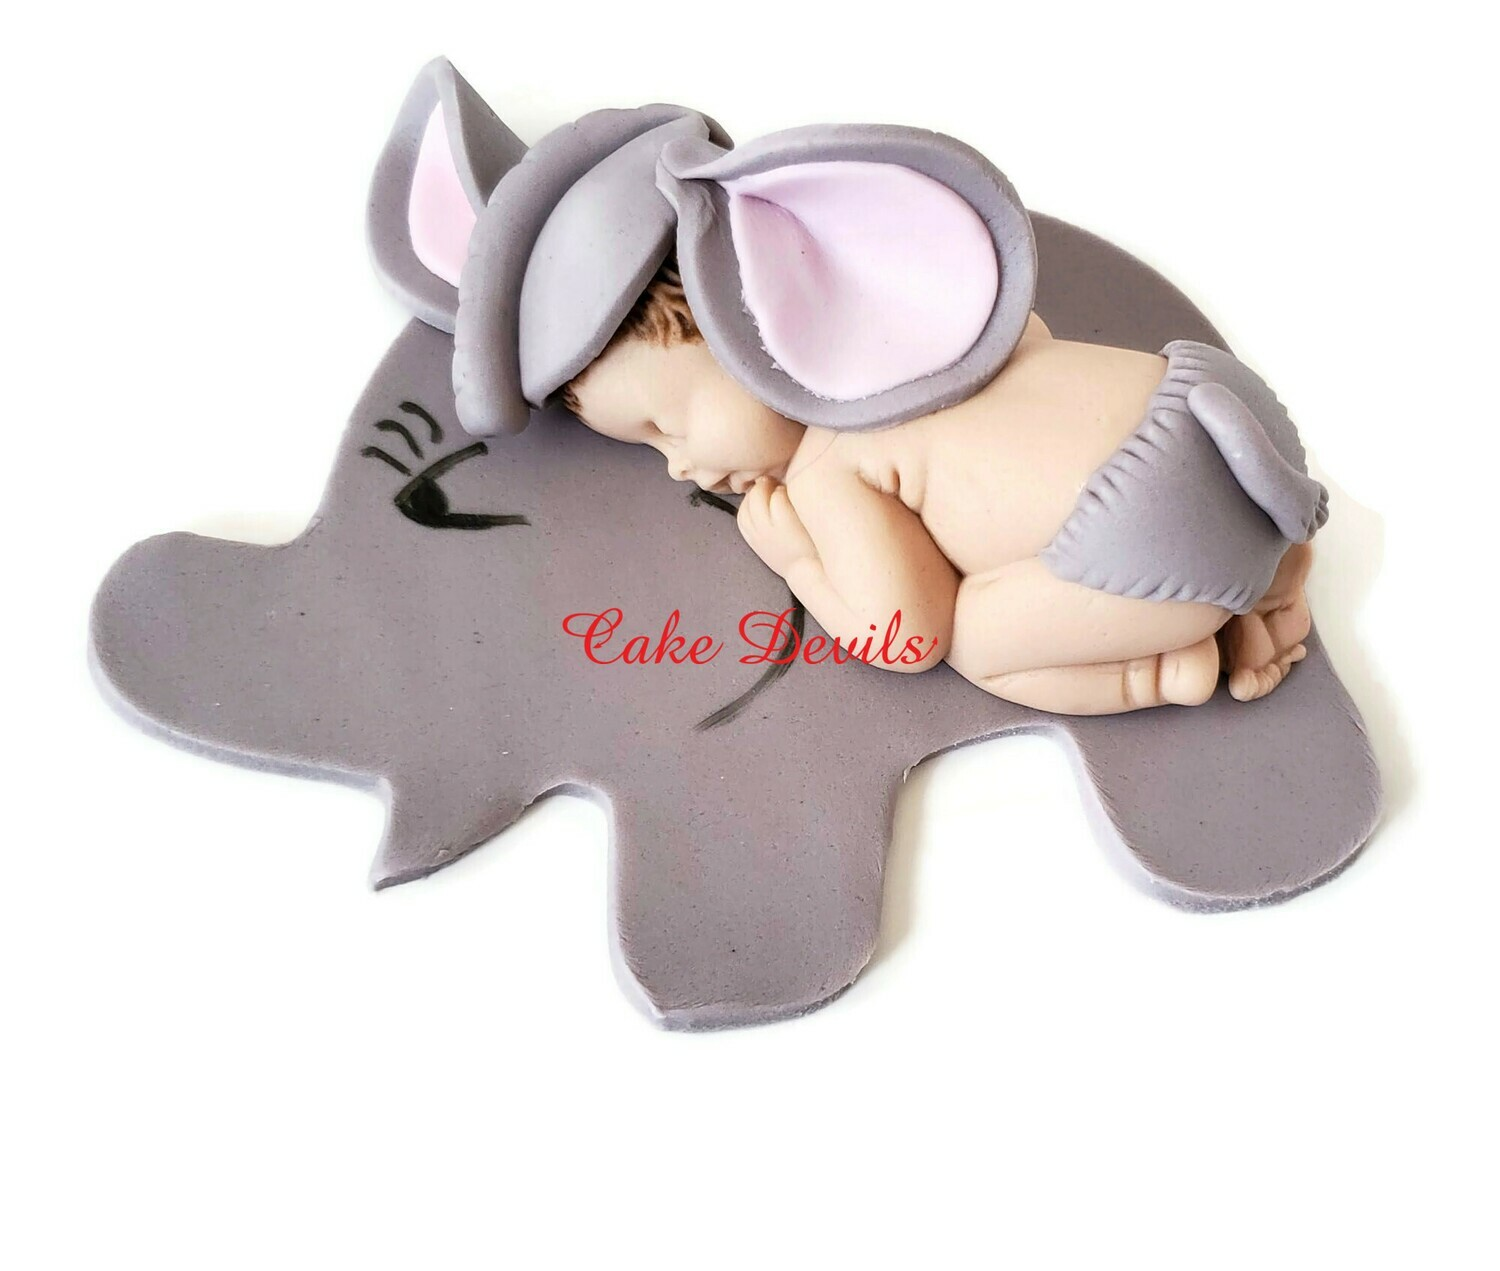 Fondant Elephant Baby Shower Cake Topper, Sleeping Baby dressed as an Elephant